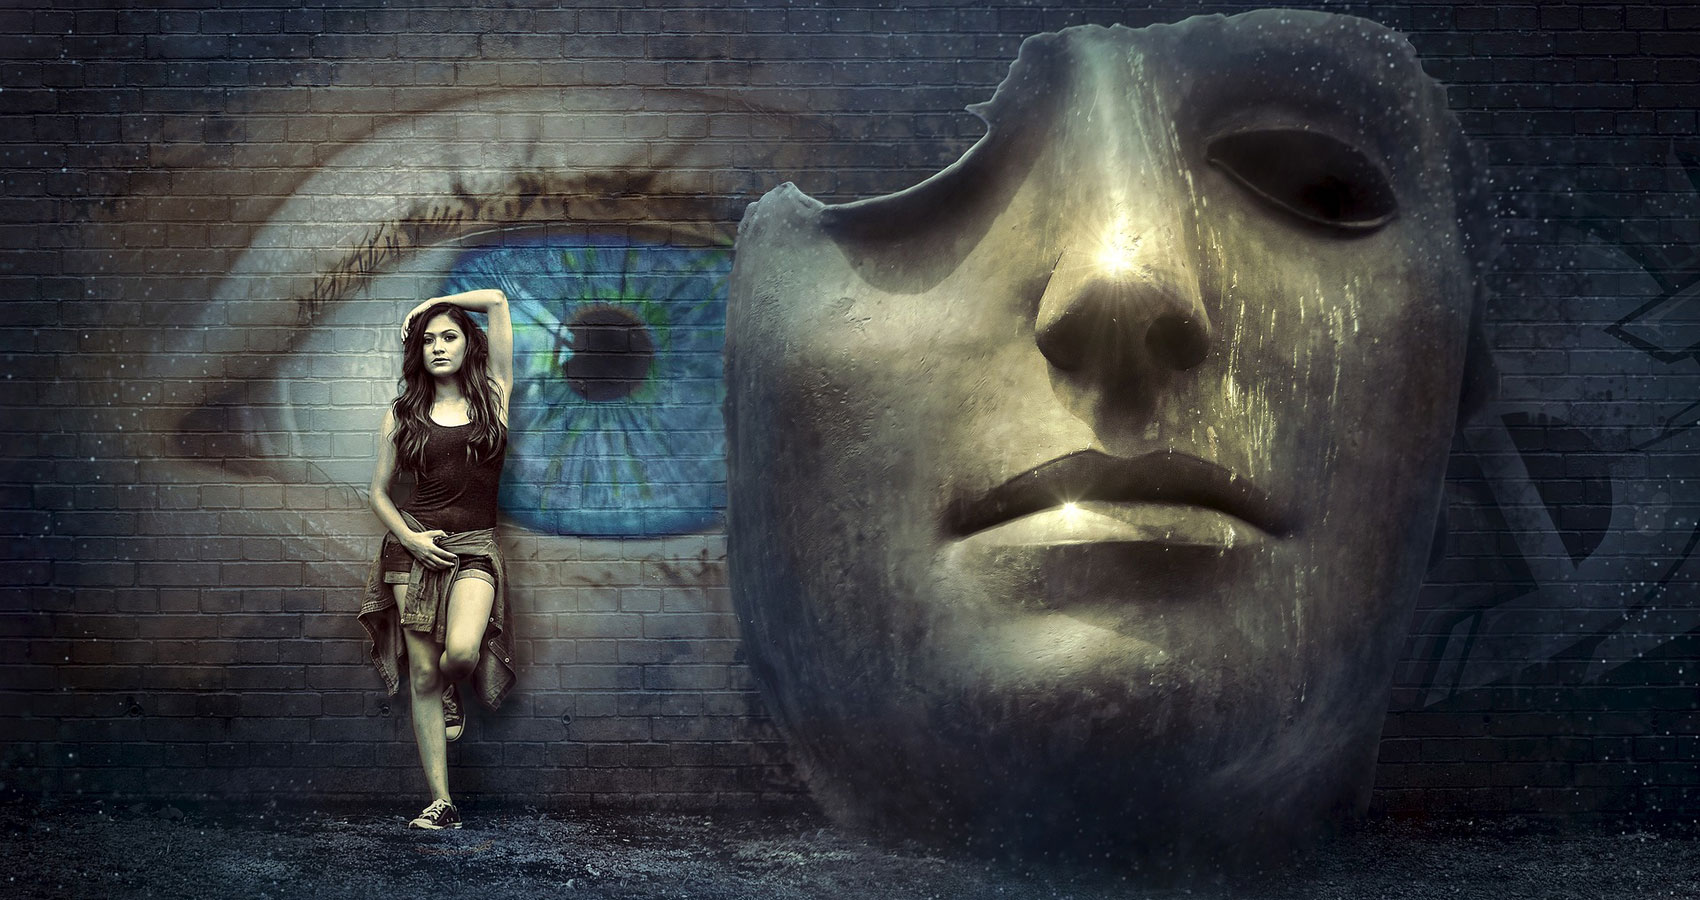 Weeping Mask, a poem written by Lynn White at Spillwords.com